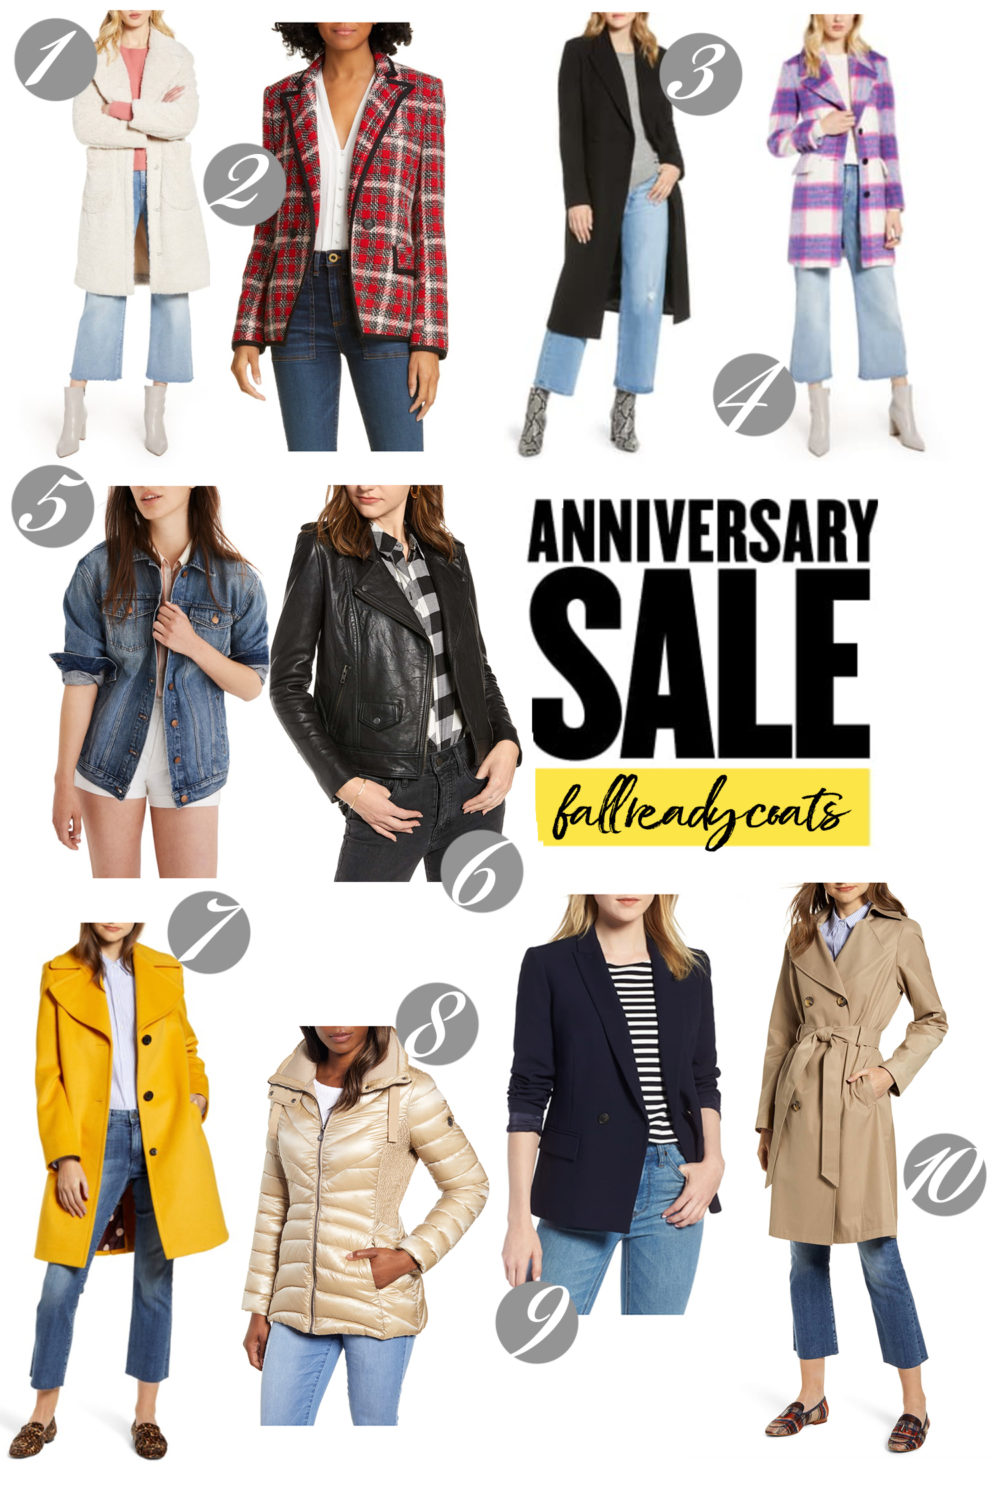 Nordstrom Anniversary Sale | Nordstrom Anniversary Sale Coats and Jackets |